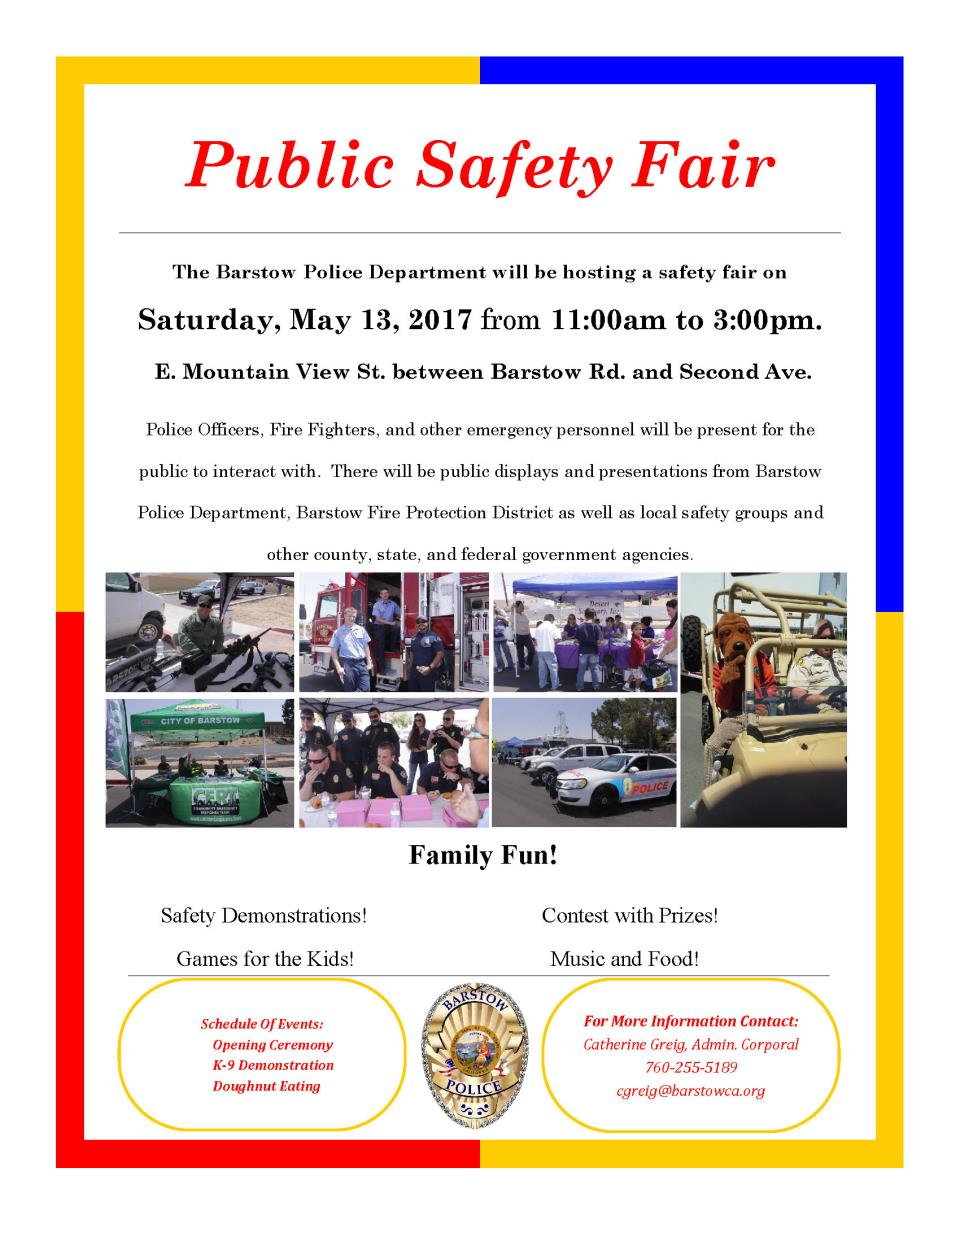 Public Safety Day Flyer 2017